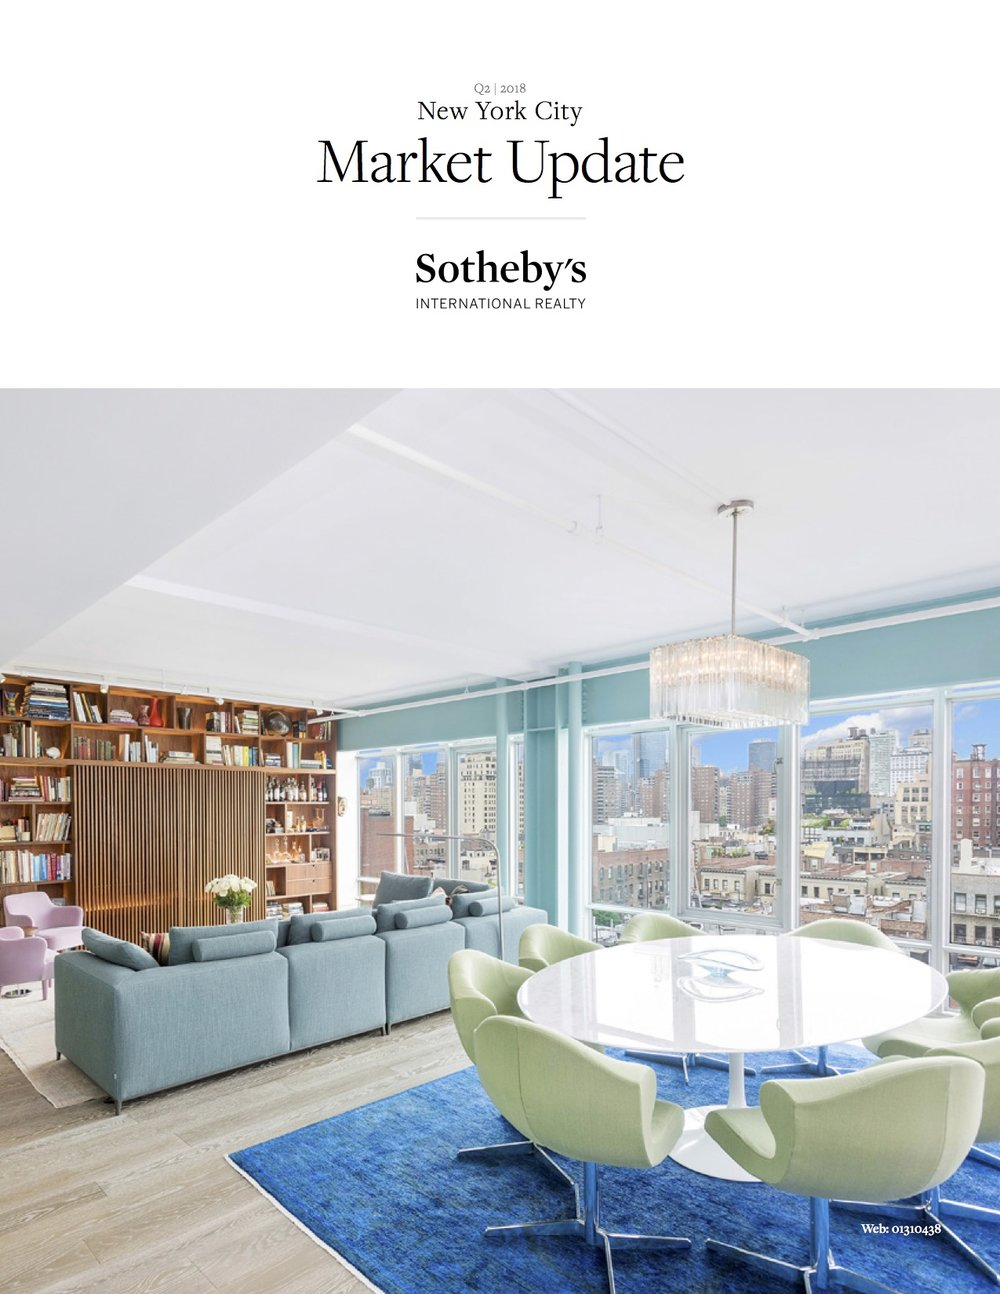 MarketUpdate_NYC_Q2_2018_1.jpg